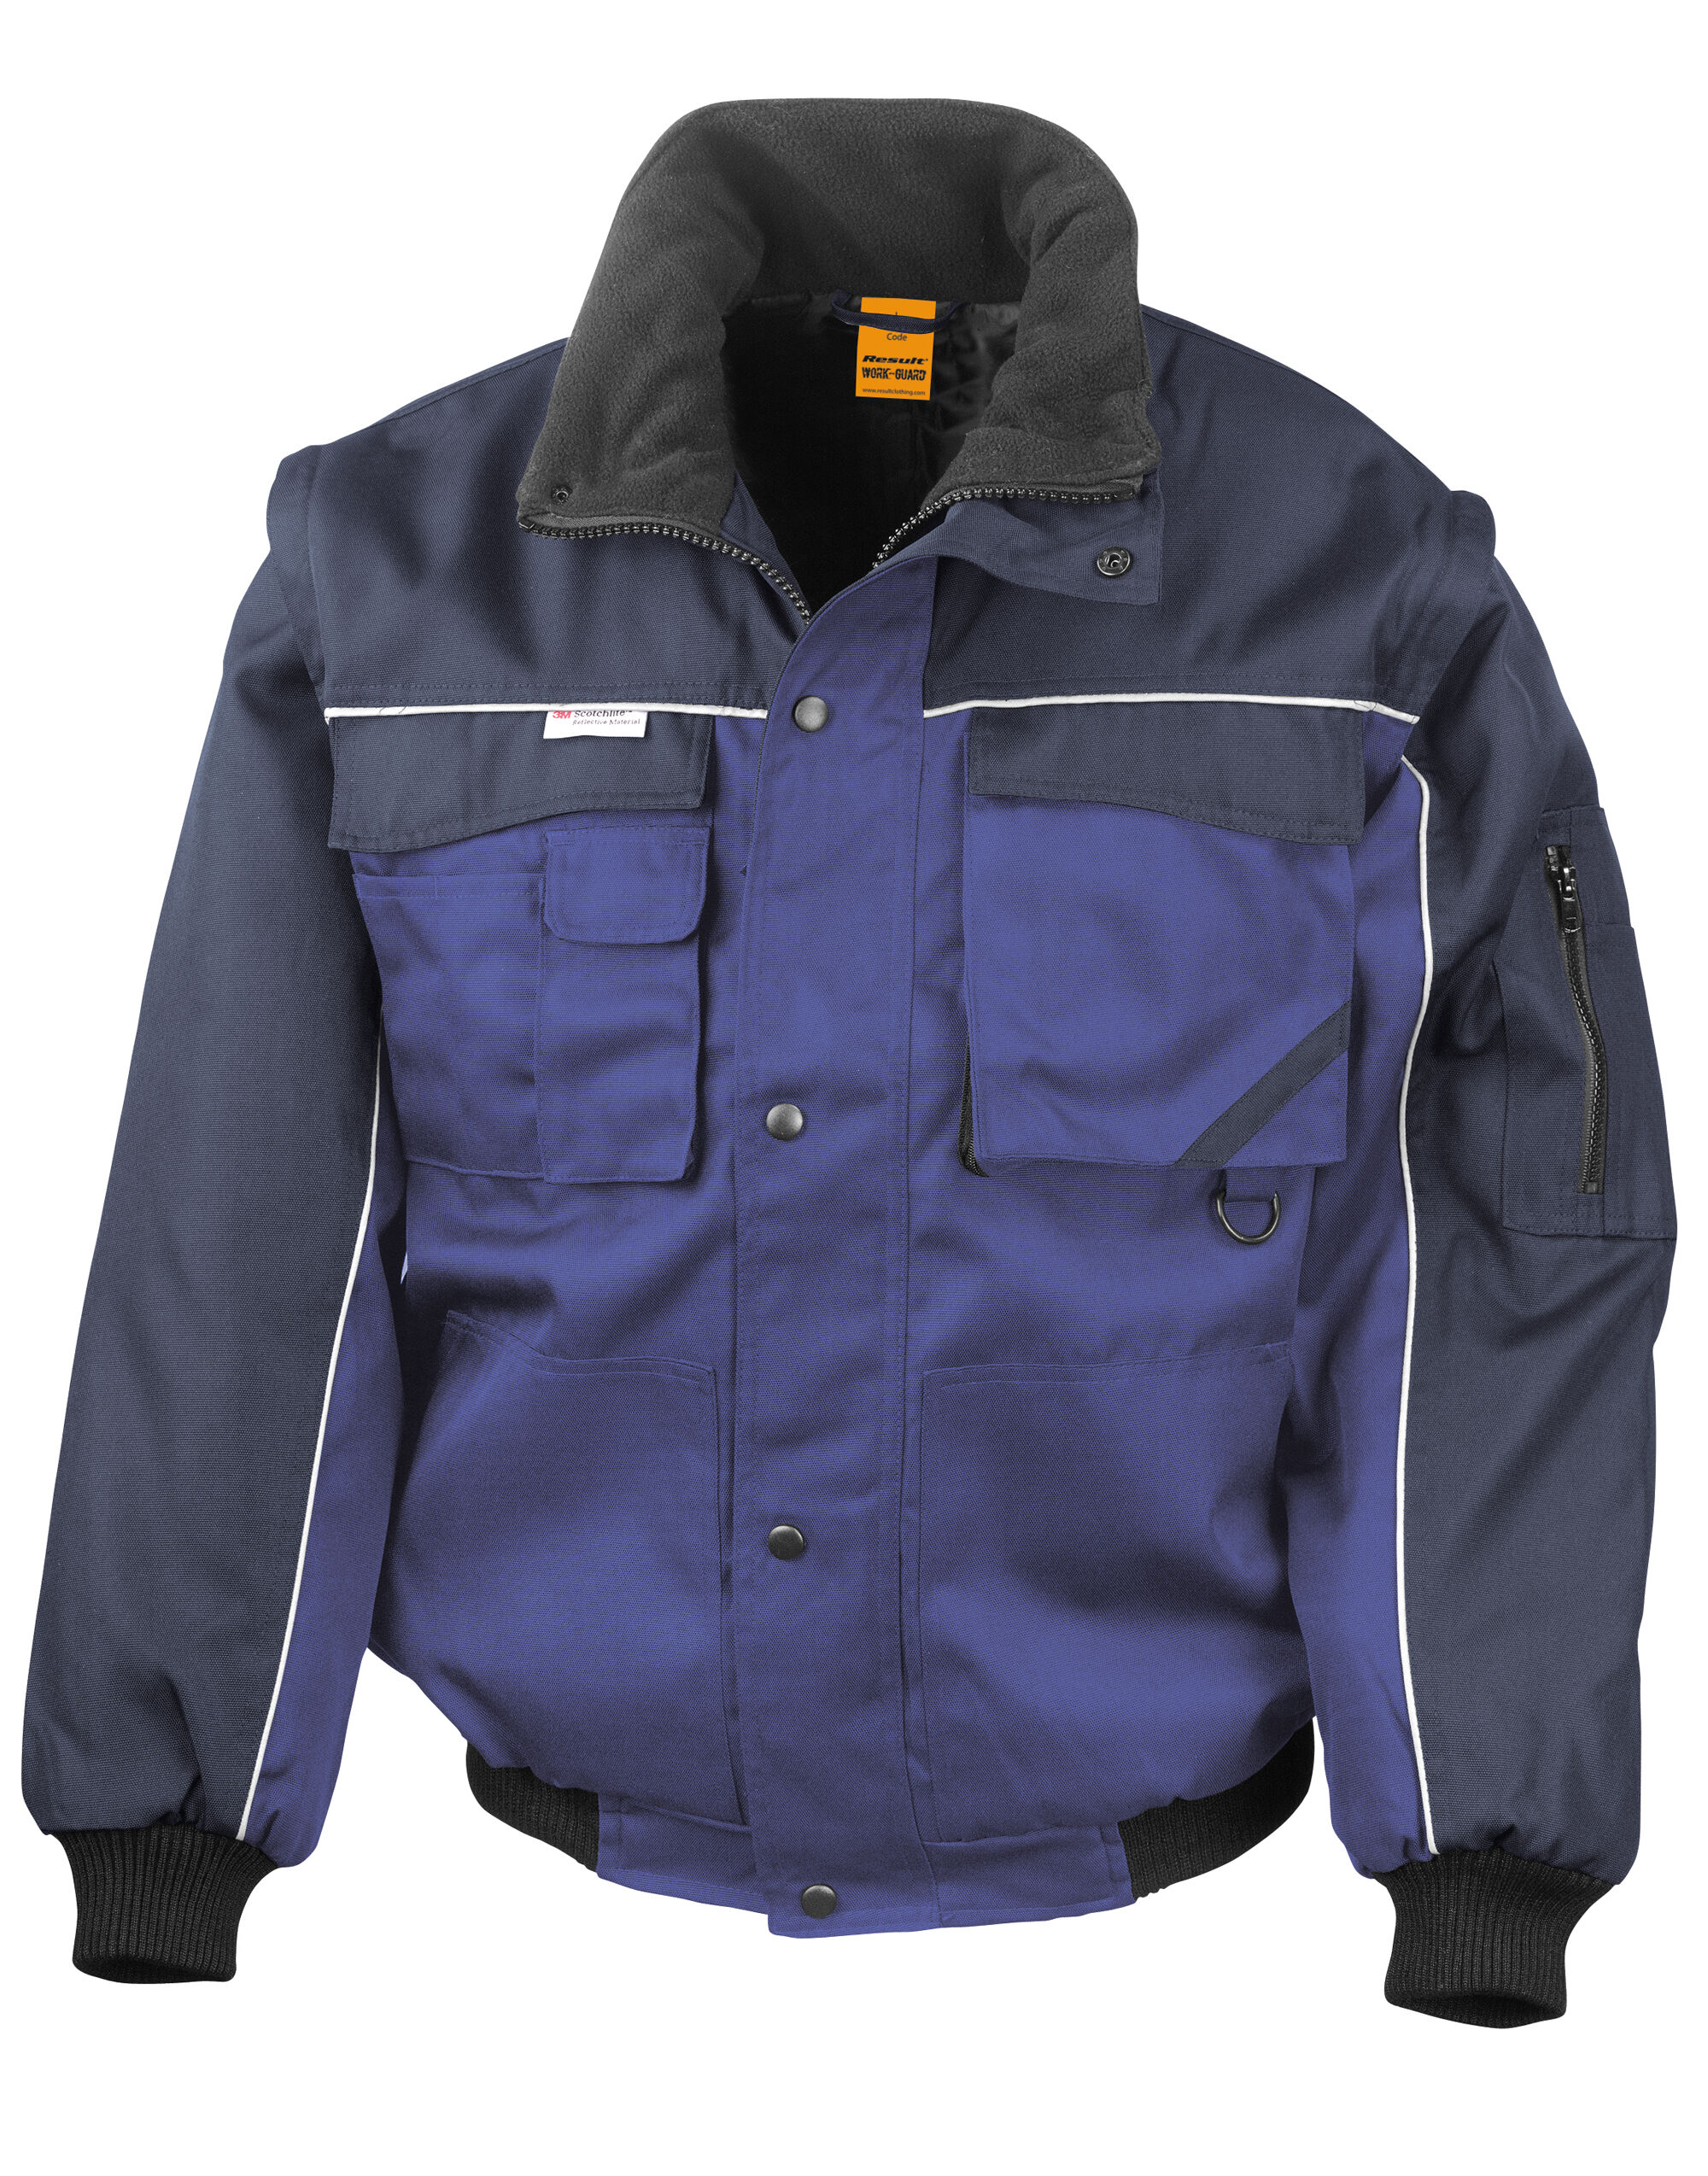 Workgaurd Zip Sleeve Heavy Duty Jacket